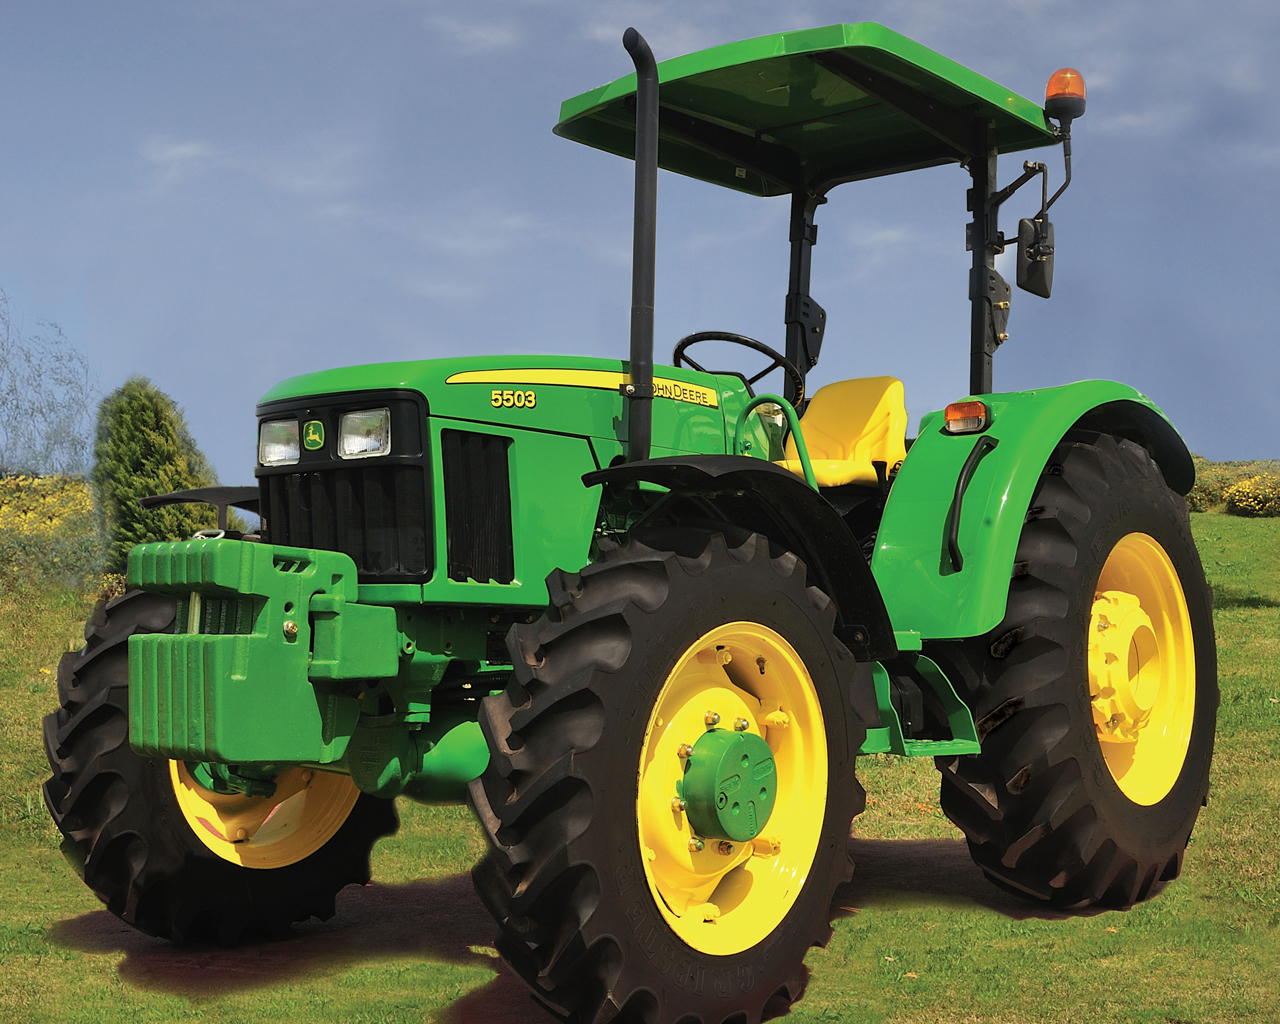 John Deere 5503 Tractor for sale in Kenya